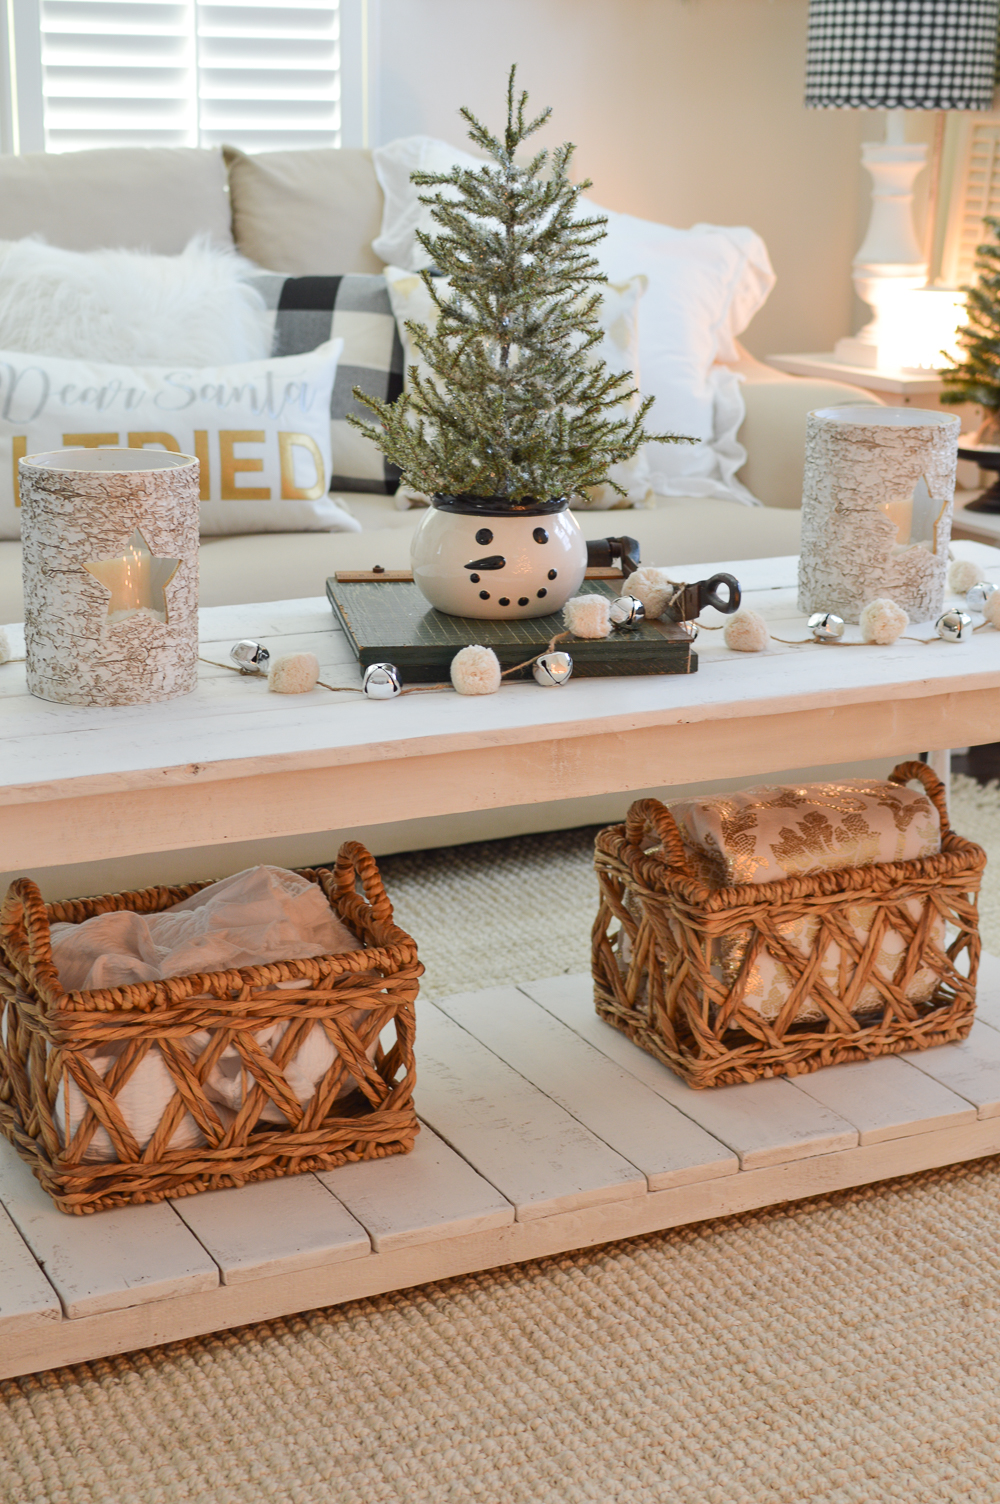 Calm Cozy Christmas Living Room. Simple, Stress-Free Holiday Decorating Ideas at Fox Hollow Cottage